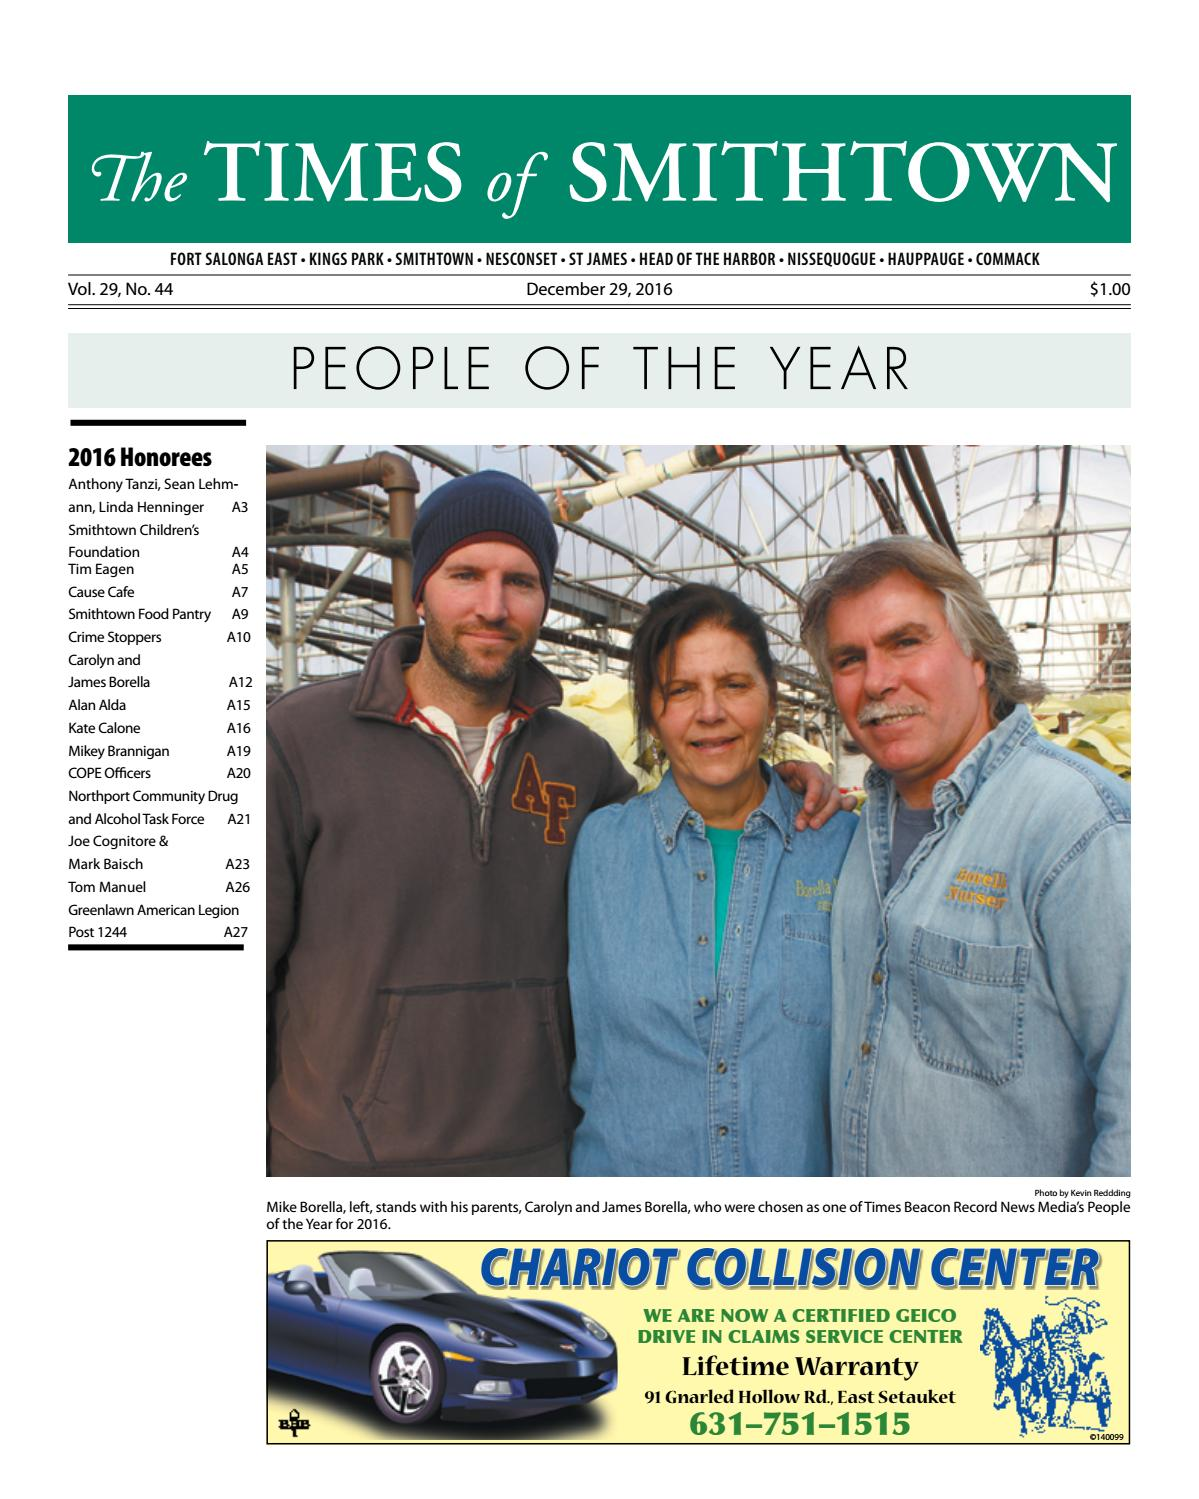 Manuel Collision Center >> The Times of Smithtown - December 29, 2016 by TBR News Media - Issuu